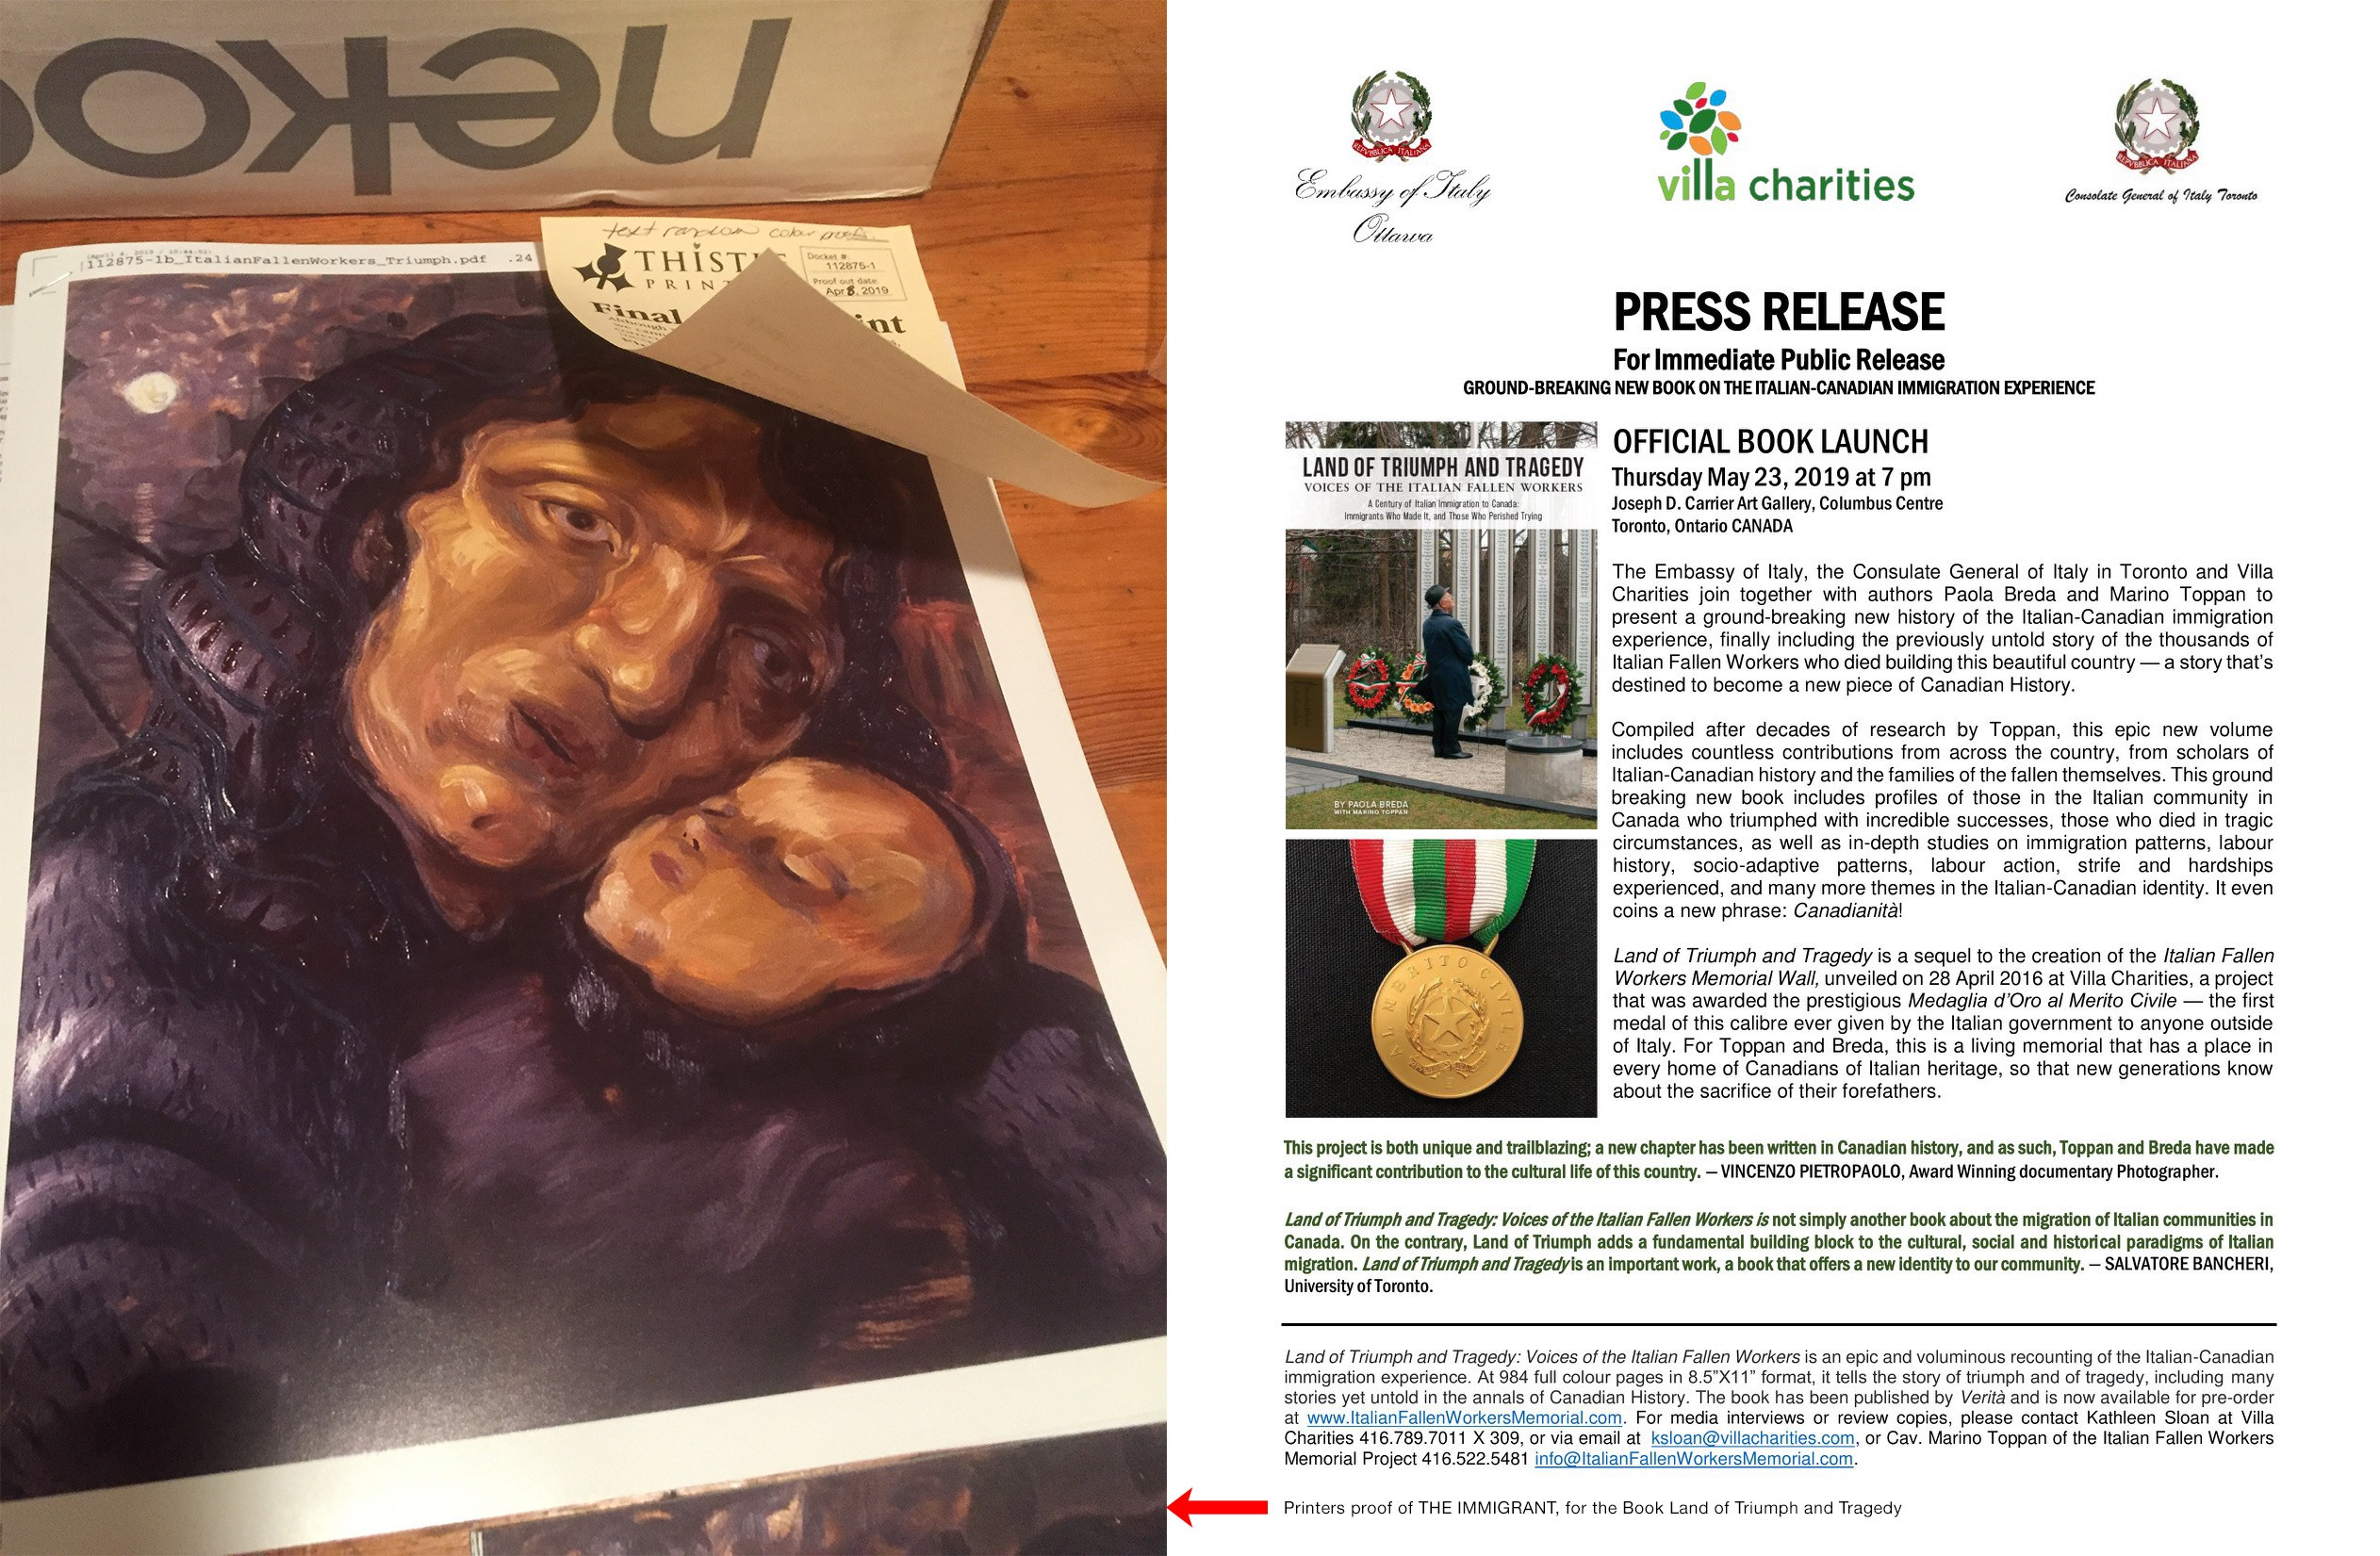 THE IMMIGRANT and other paintings are featured in LAND OF TRIUMPH AND TRAGEDY. A century of italian immigration to Canada: Immigrants who made and those who perished trying. Published in 2019